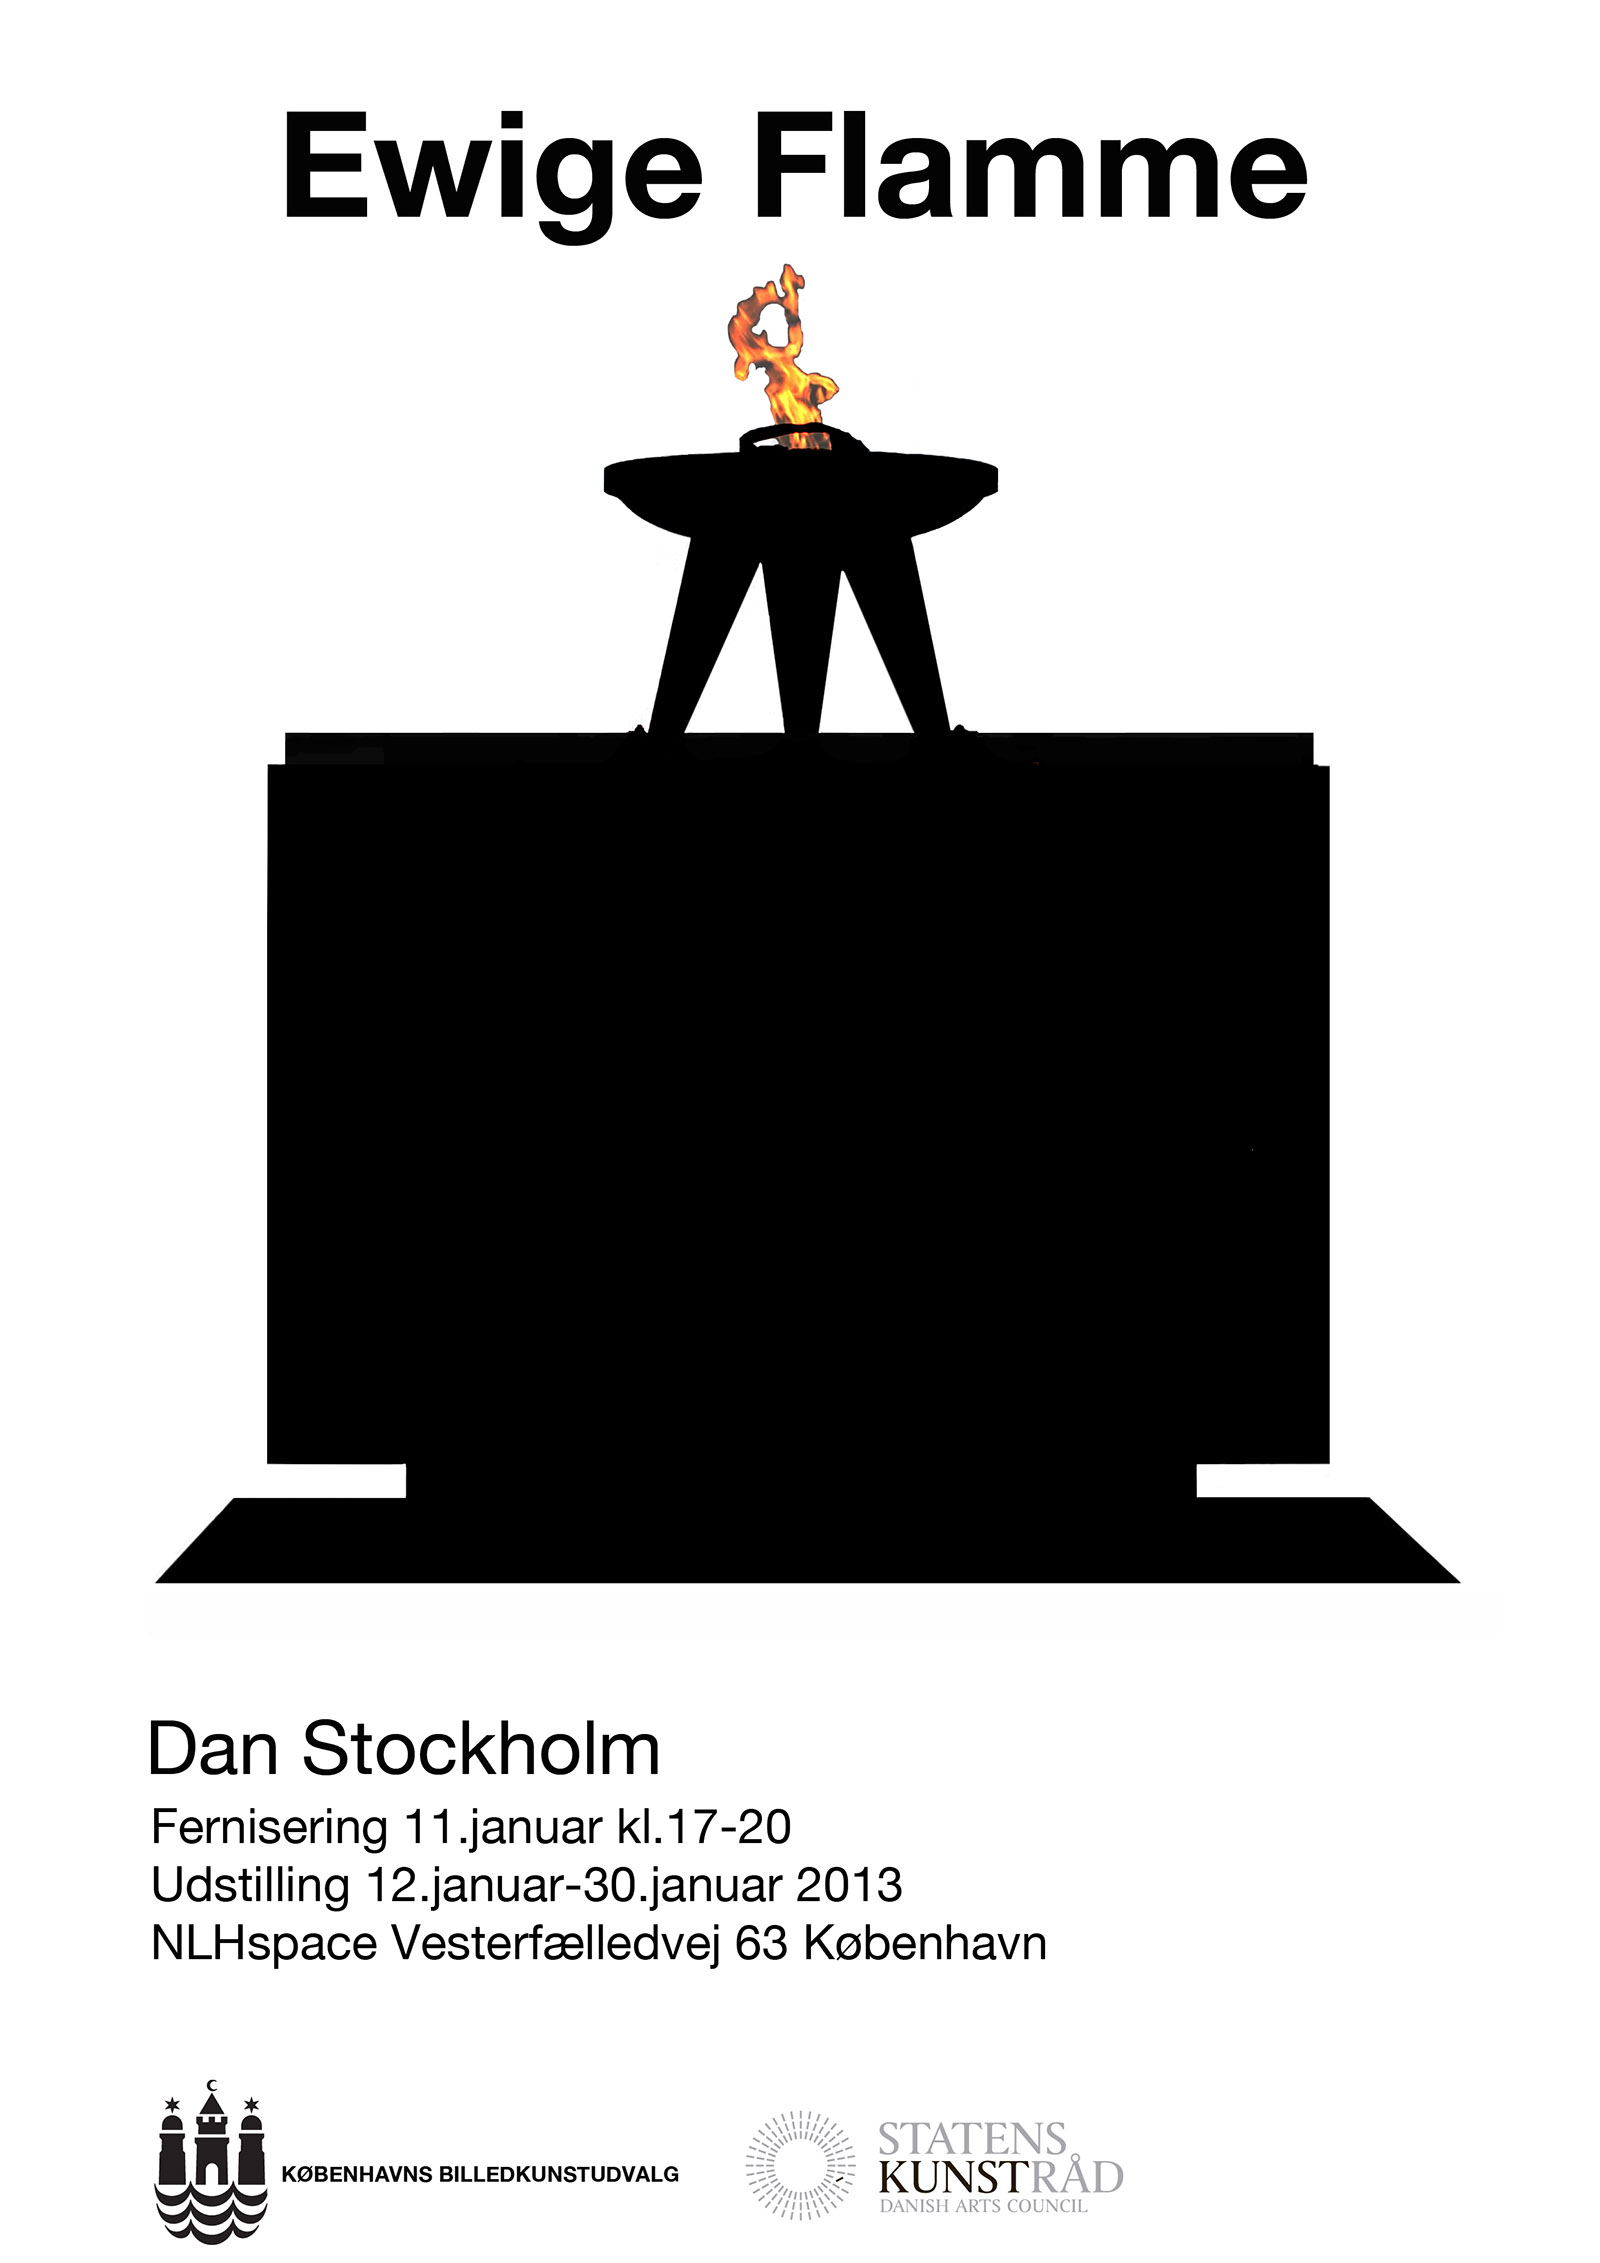 Poster for the exhibition of the work 'Ewige Flamme' by Dan Stockholm